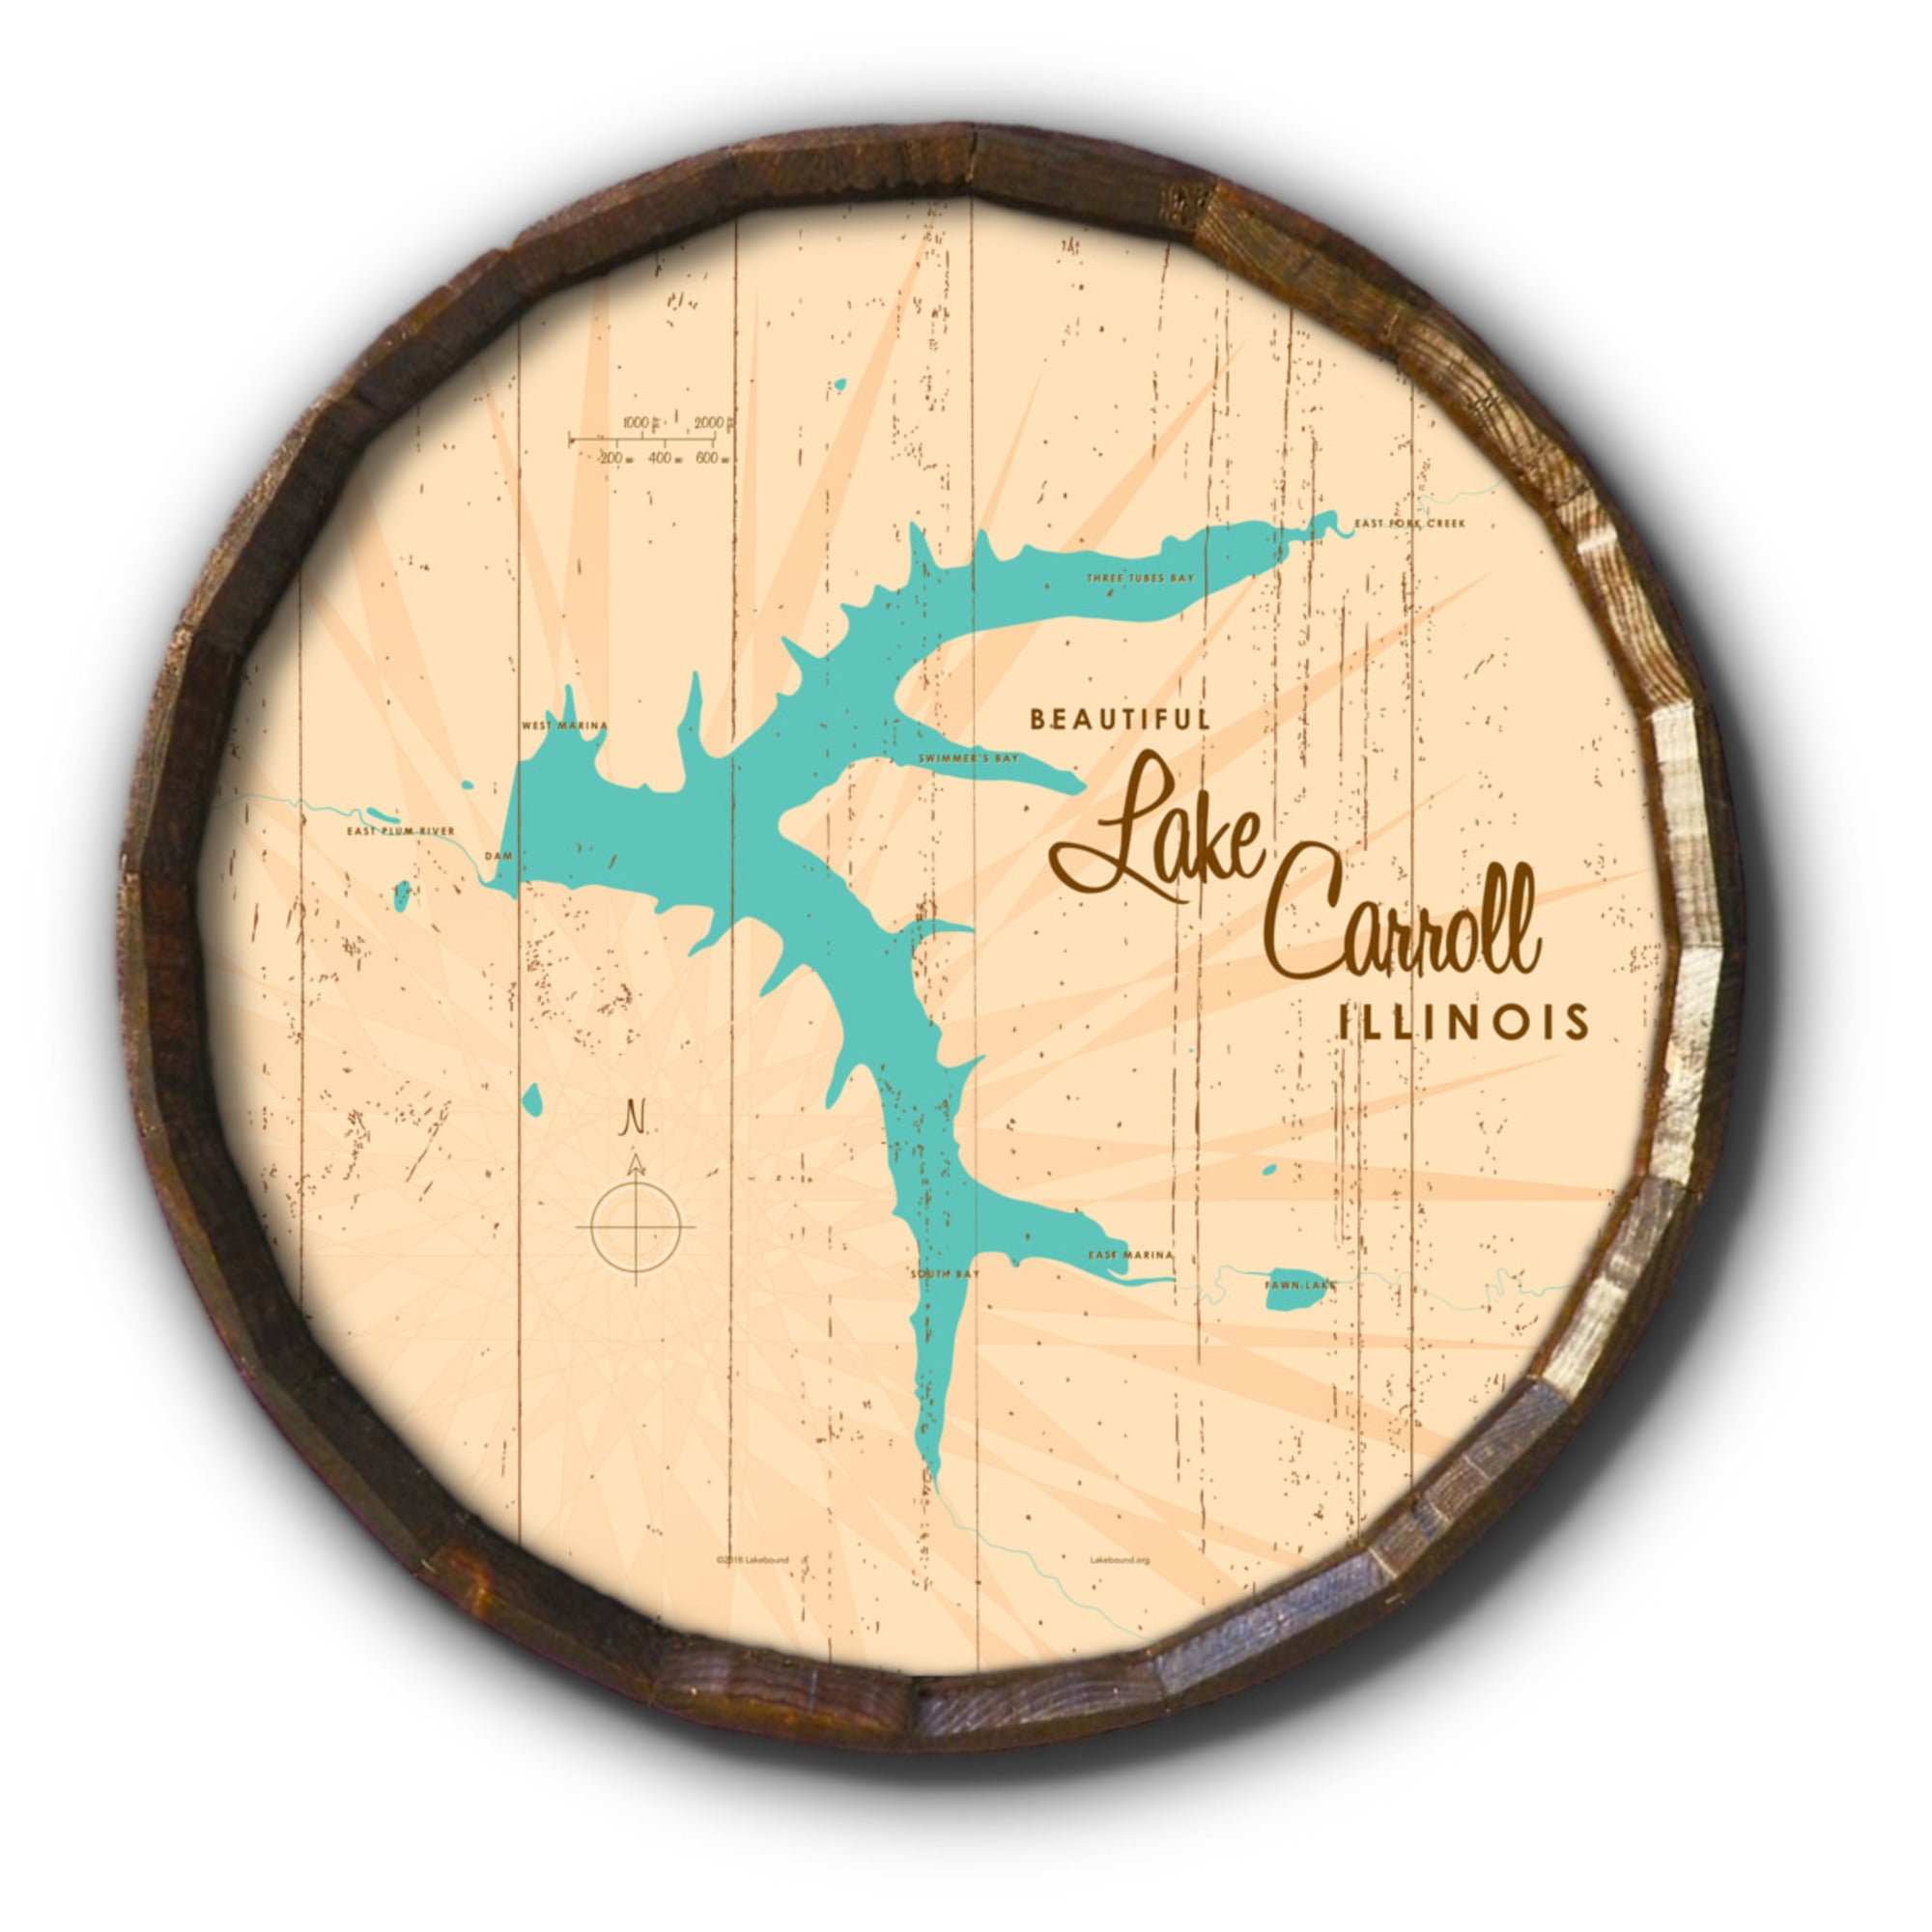 Lake Carroll Illinois, Rustic Barrel End Map Art